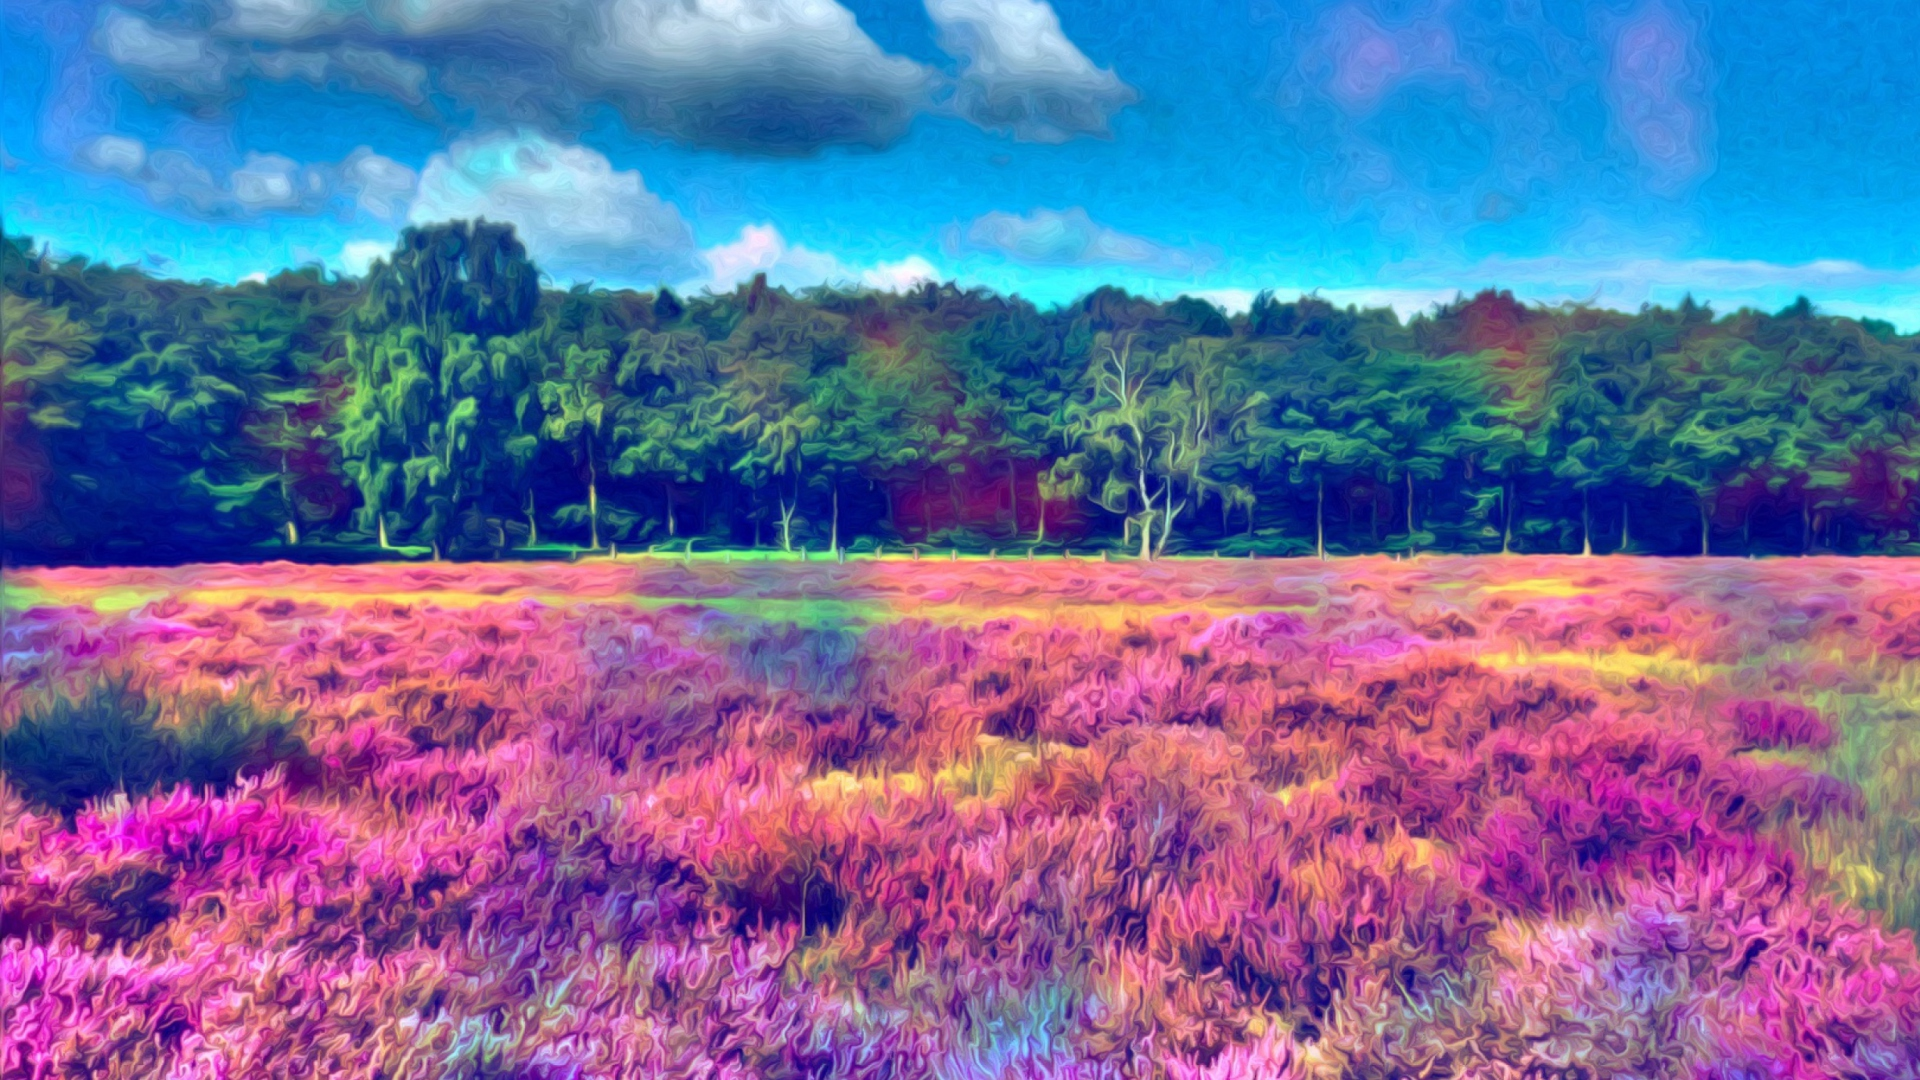 Field of color fondos de pantalla gratis para escritorio - Fondos full hd ...